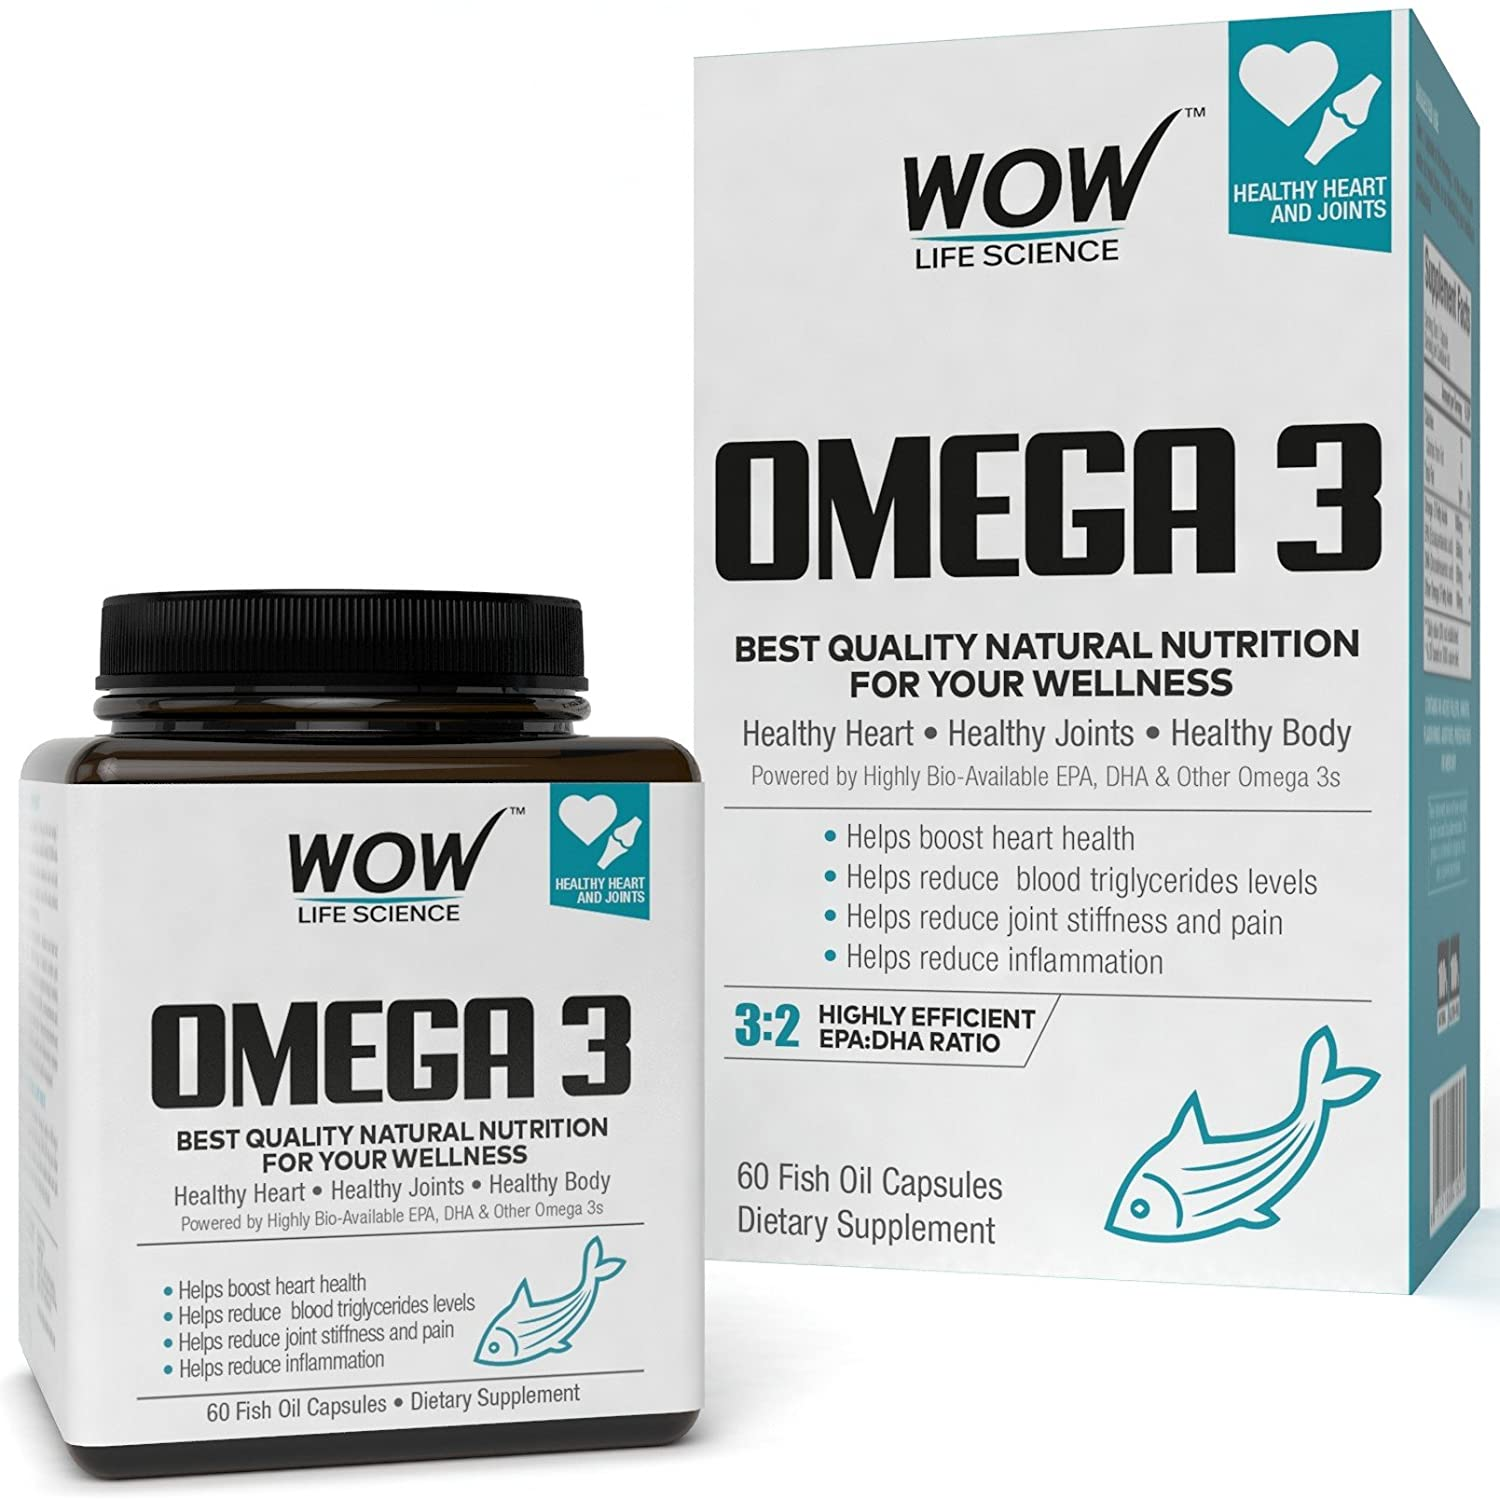 Omega 3 capsules - health wellness product